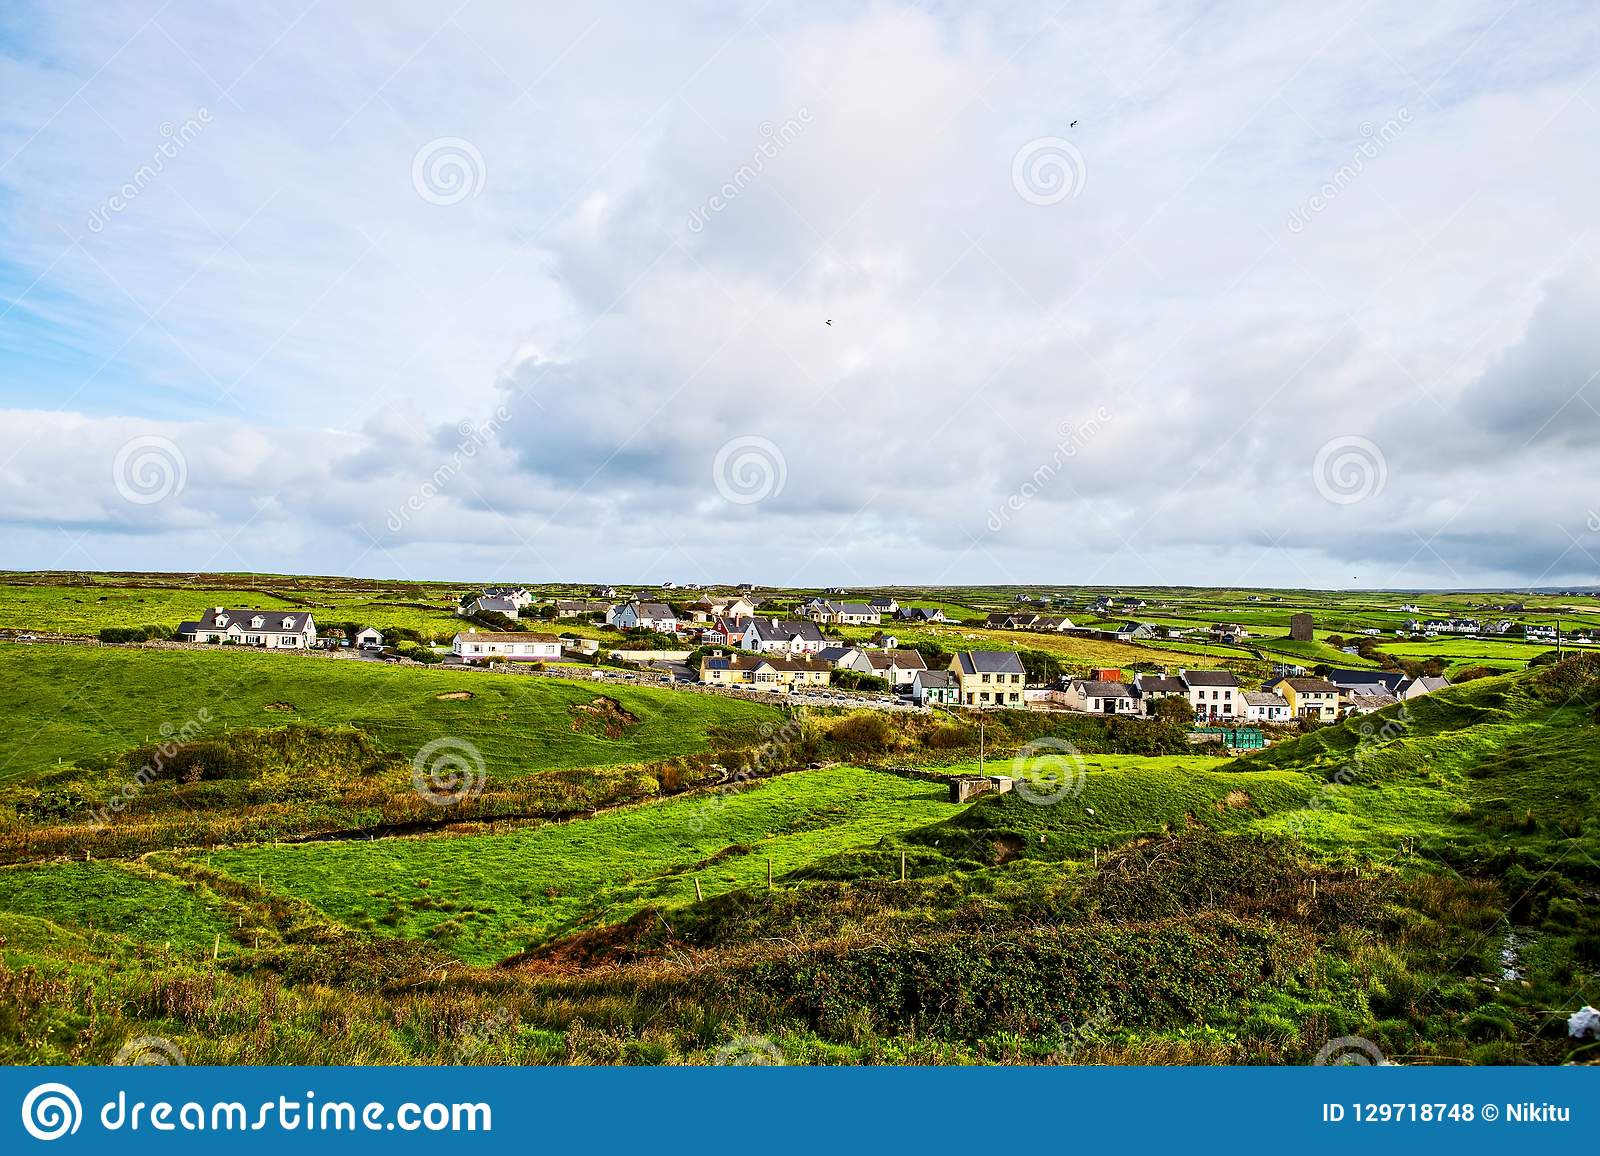 Small village at the Cliffs of Moher, Ireland